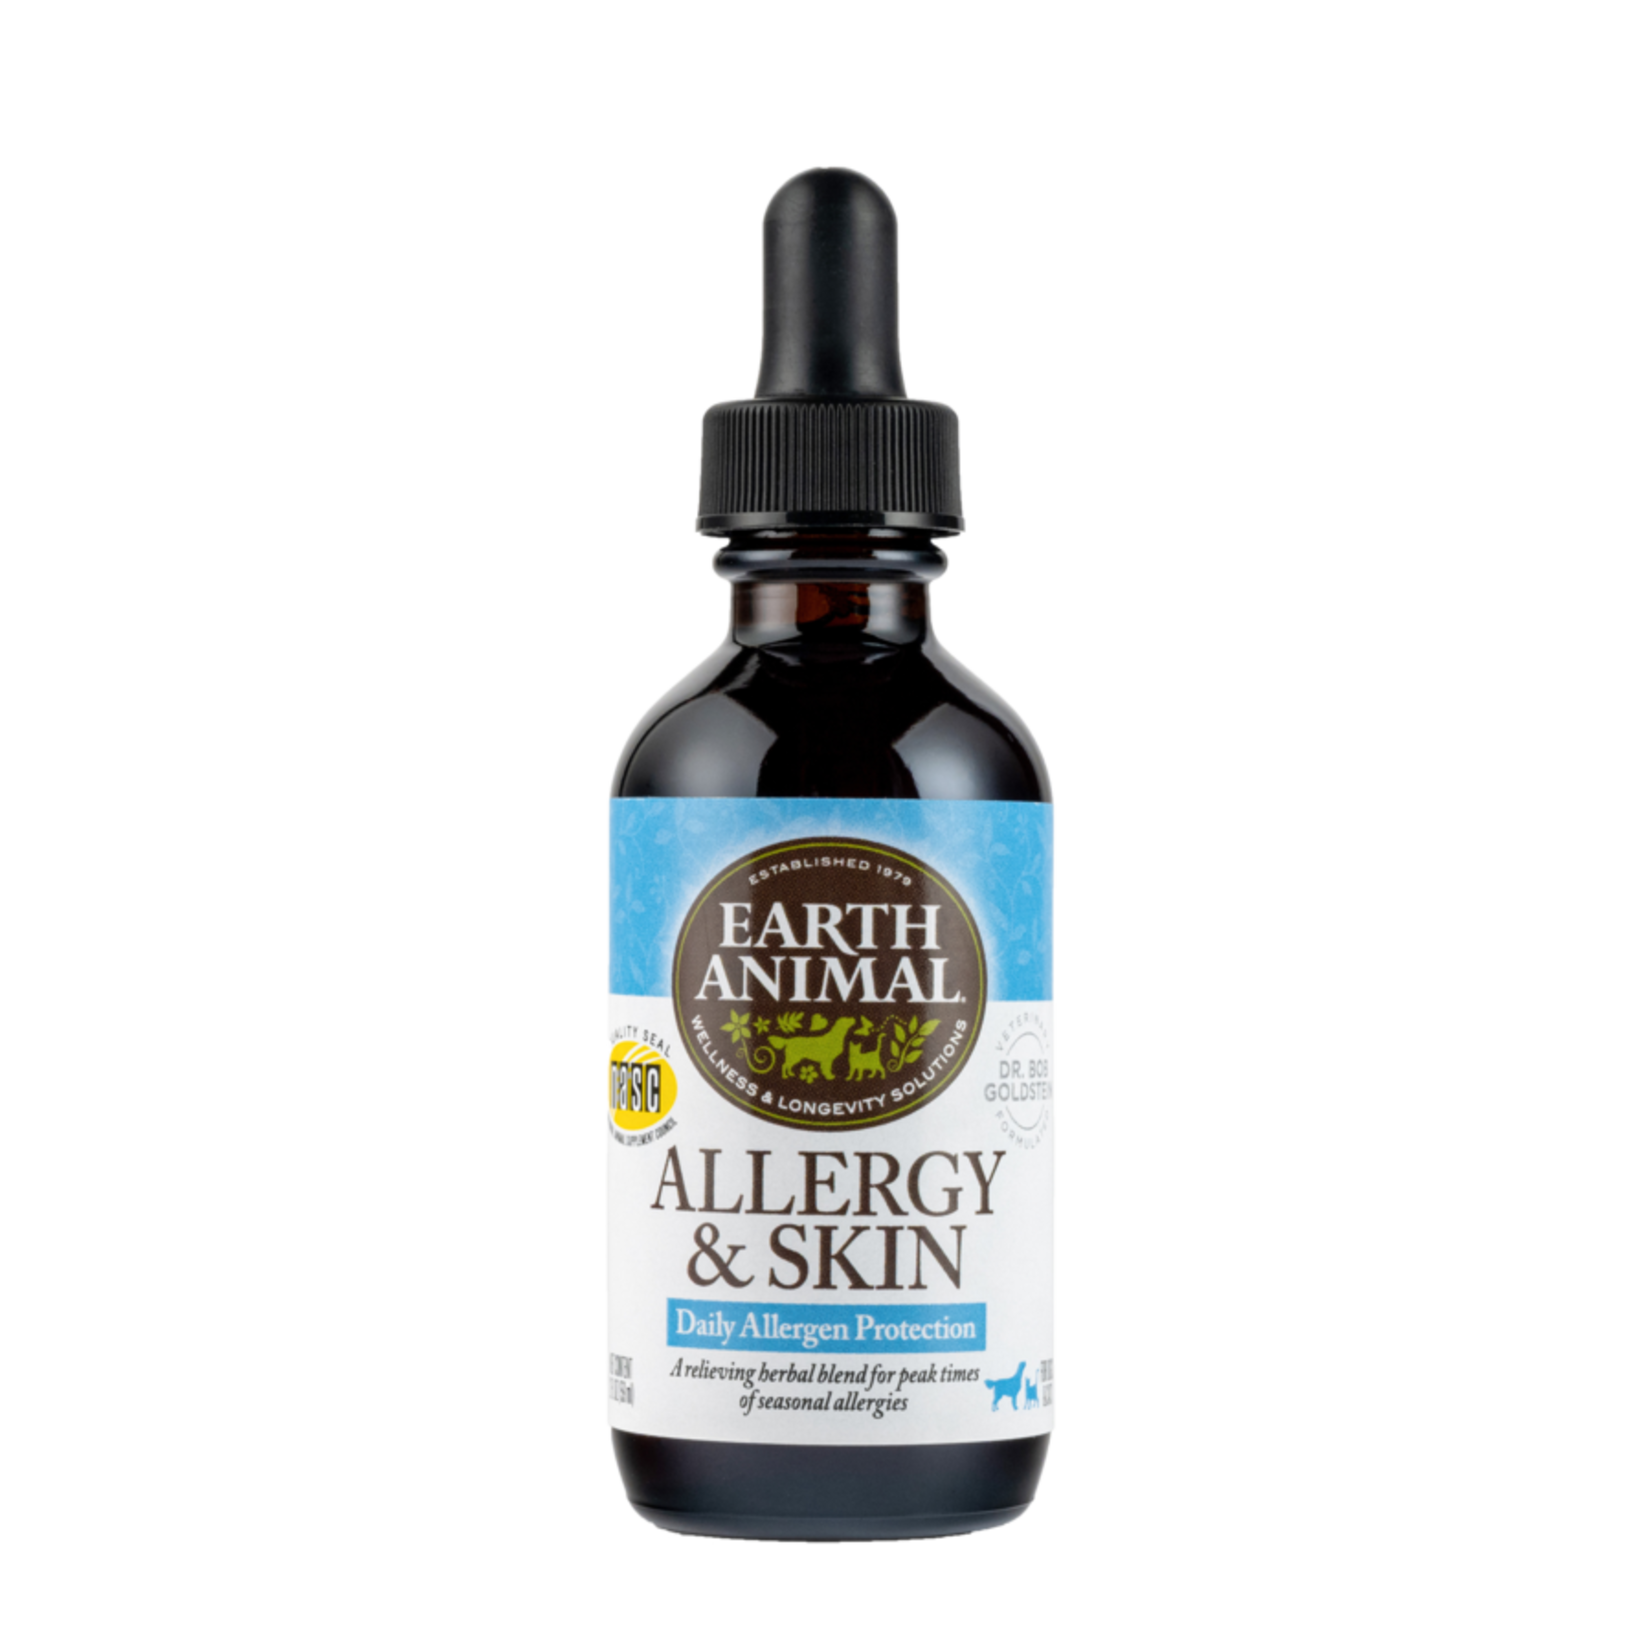 Earth Animal EA Itch & Allergy Tincture